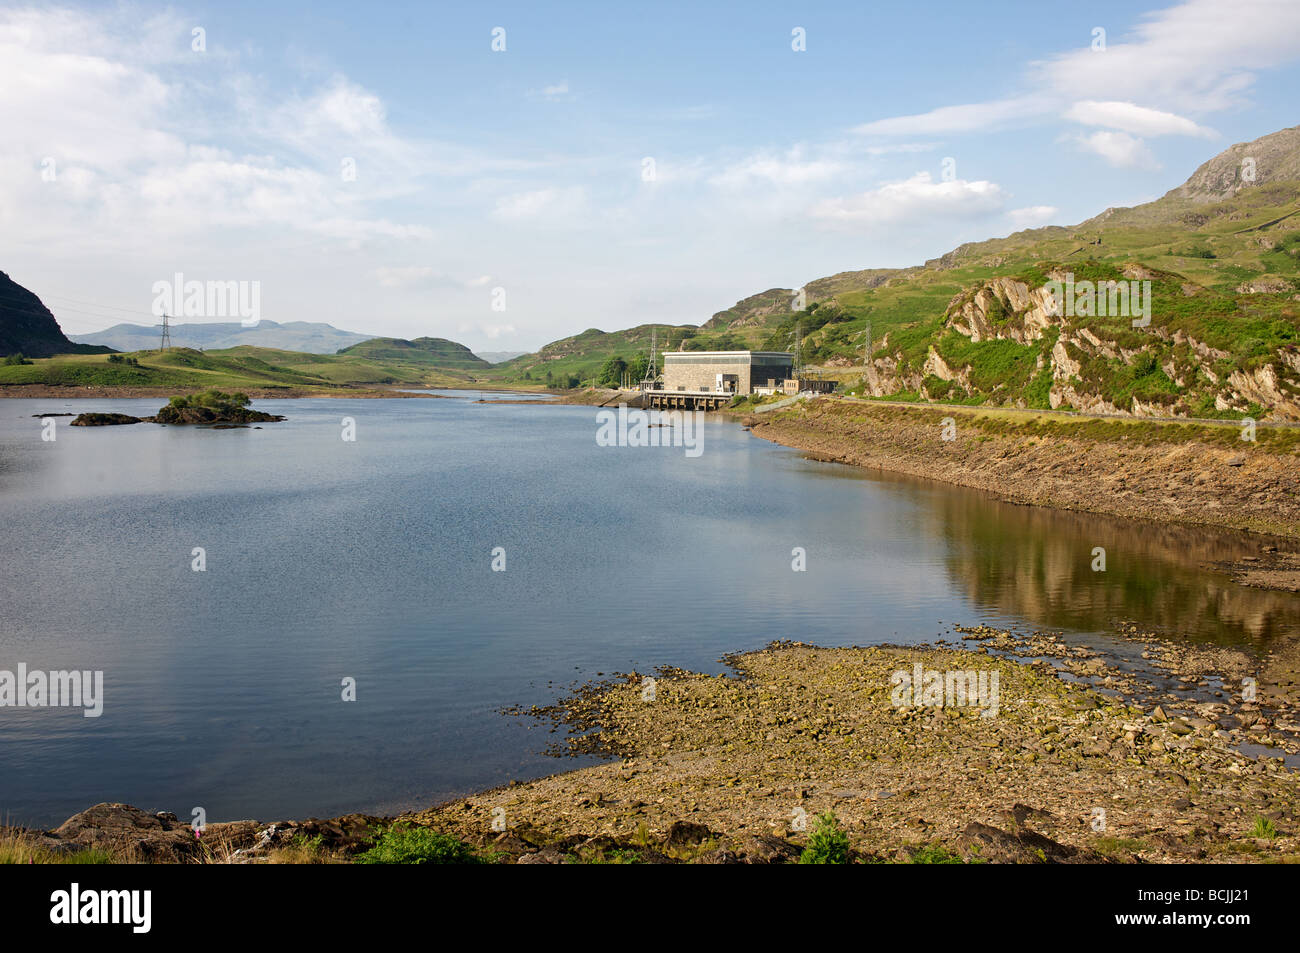 Ffestiniog hydro electric power station, North Wales. - Stock Image